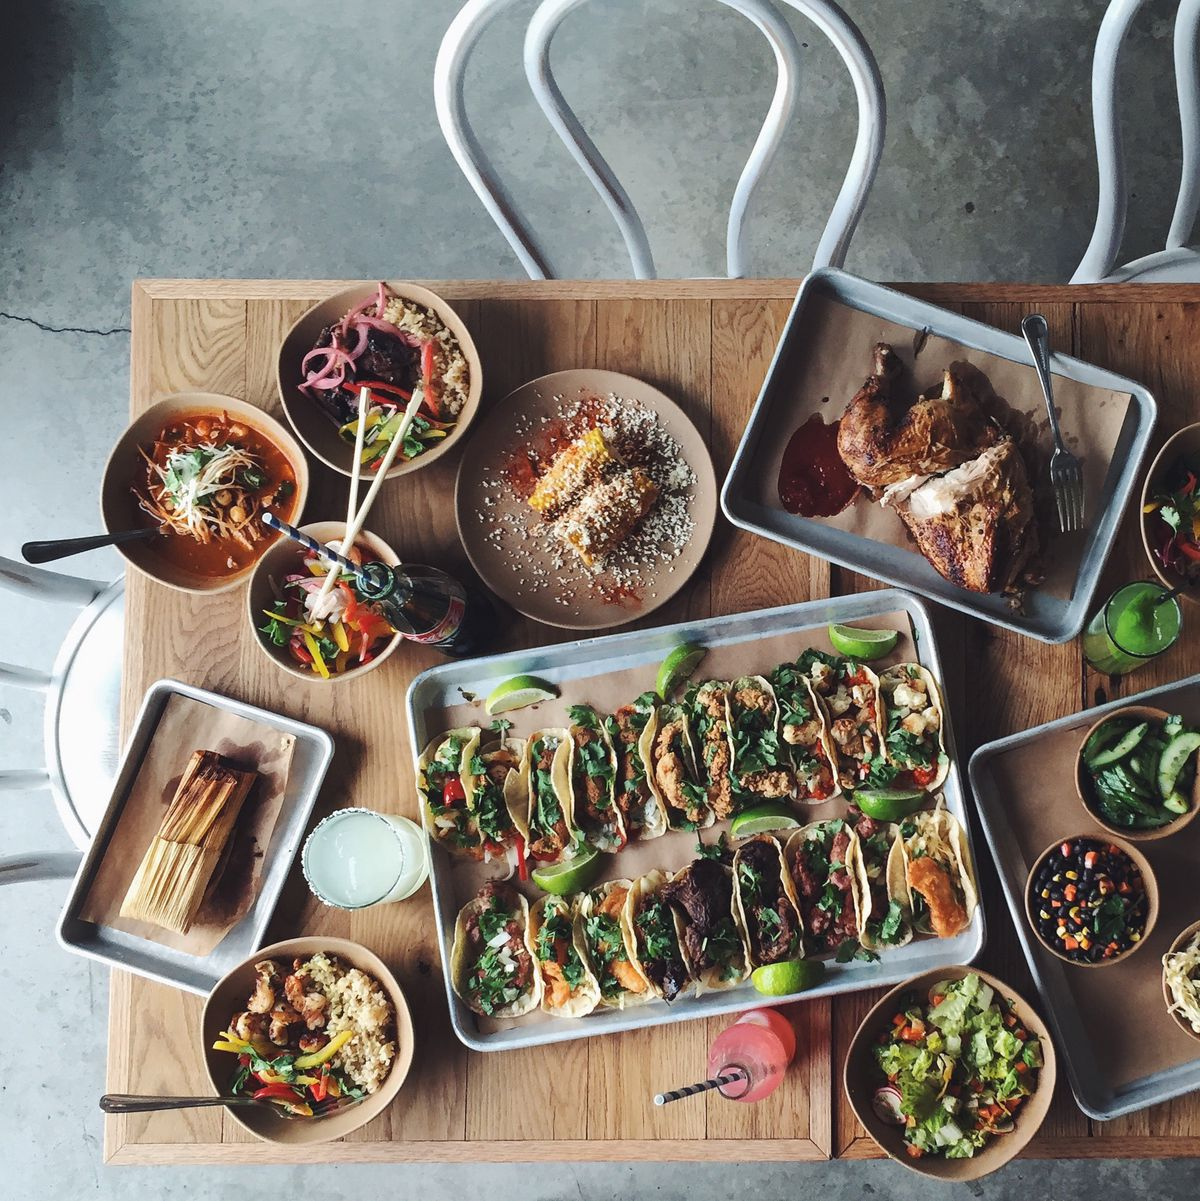 Bartaco, Sister Spot to Barcelona Wine Bar, Opens in King of